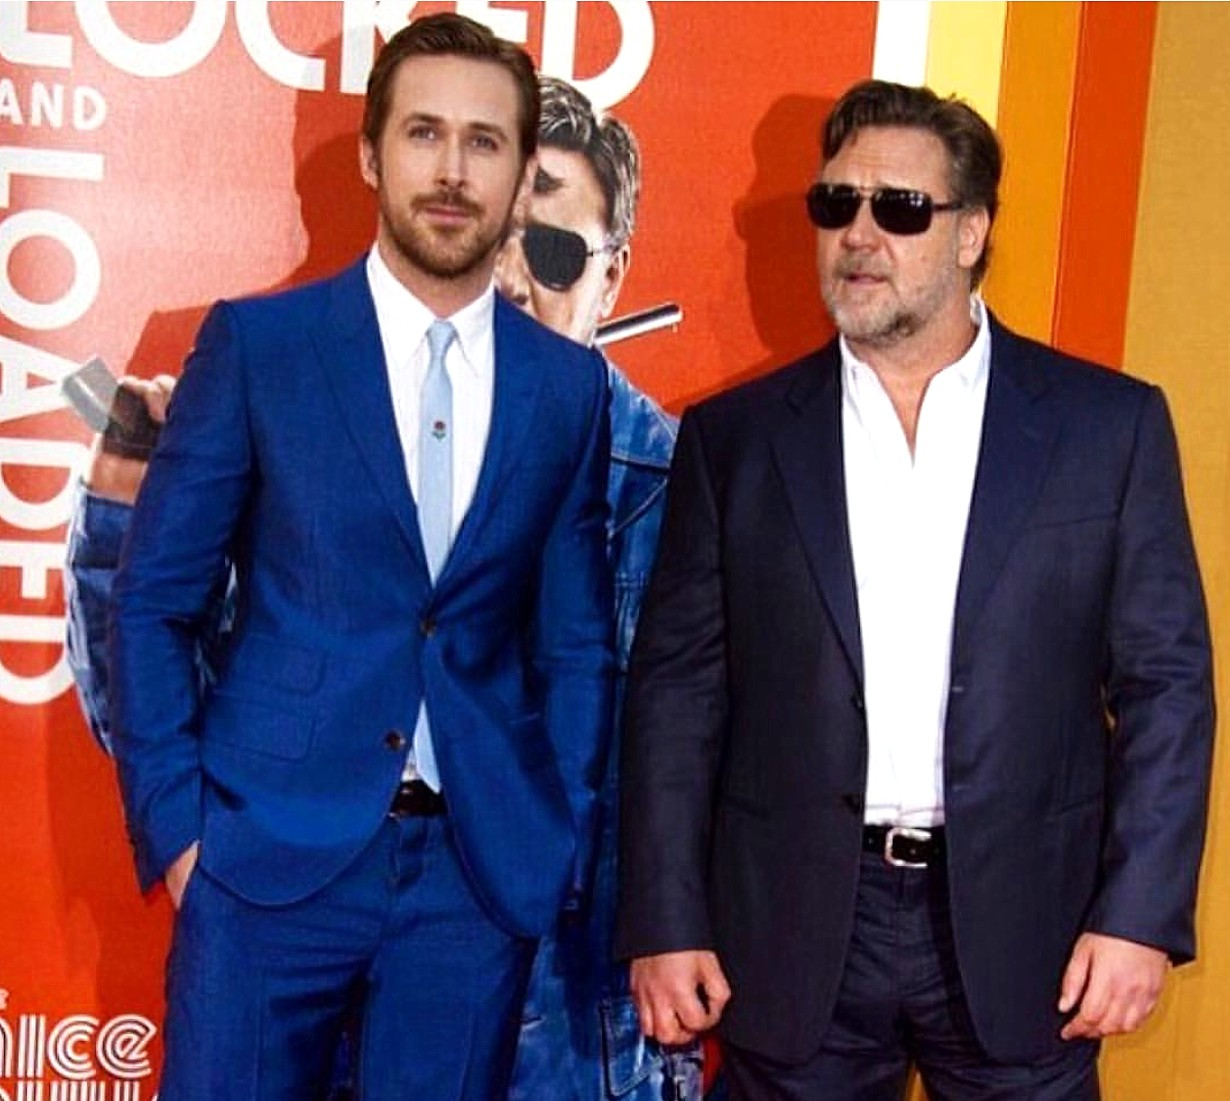 The Nice Guys, movie premiere, Ryan Gosling, Russell Crowe